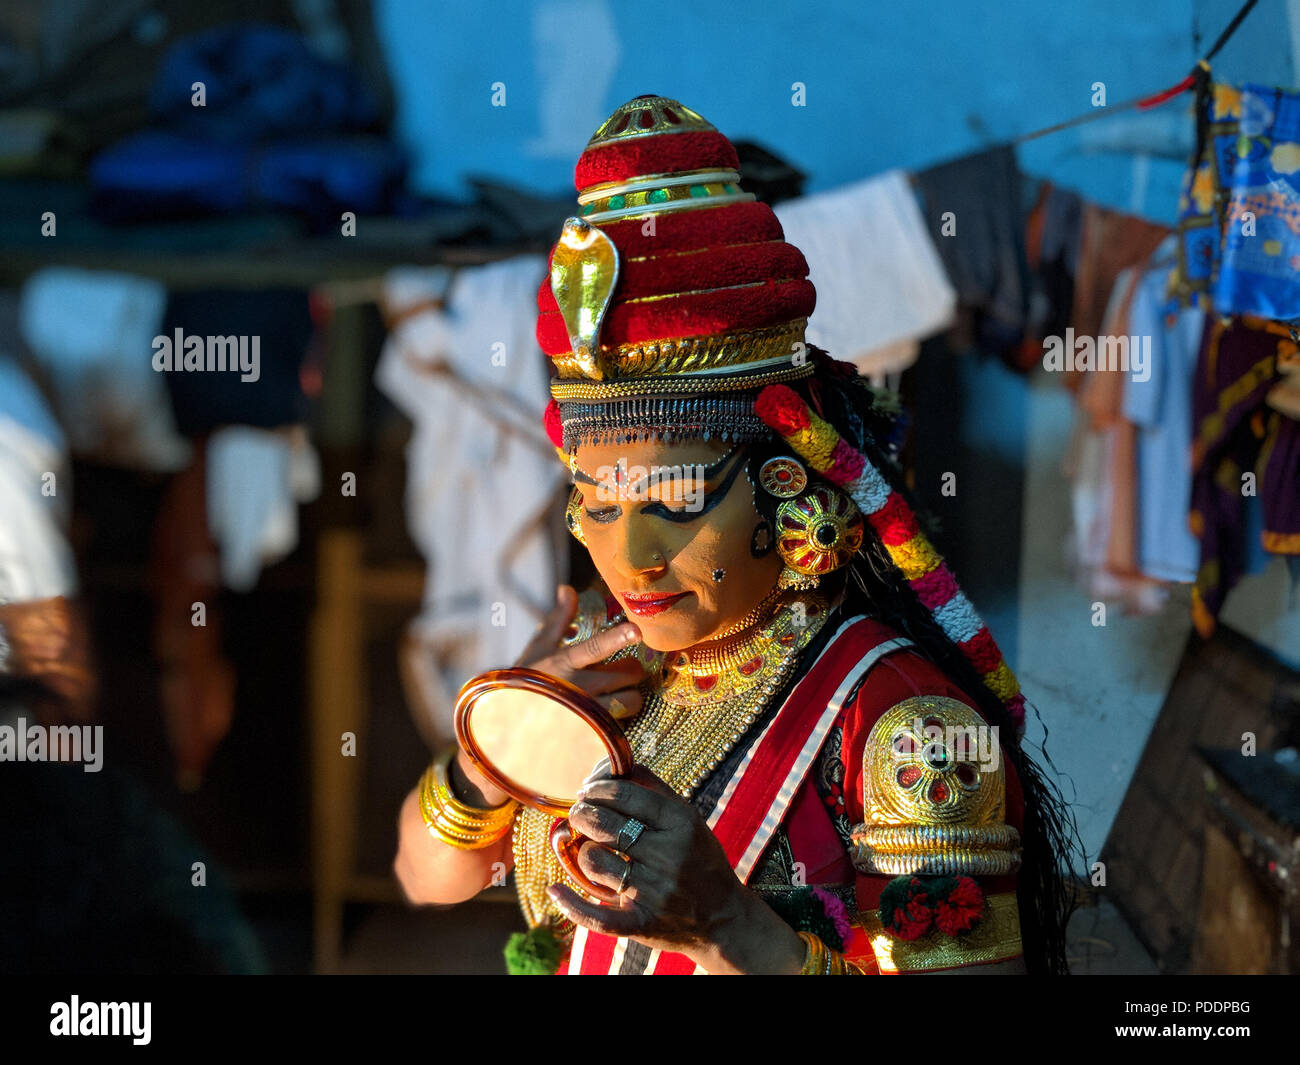 An artist is getting ready to perform Koodiyattam, the traditional performing art form from Kerala - Stock Image